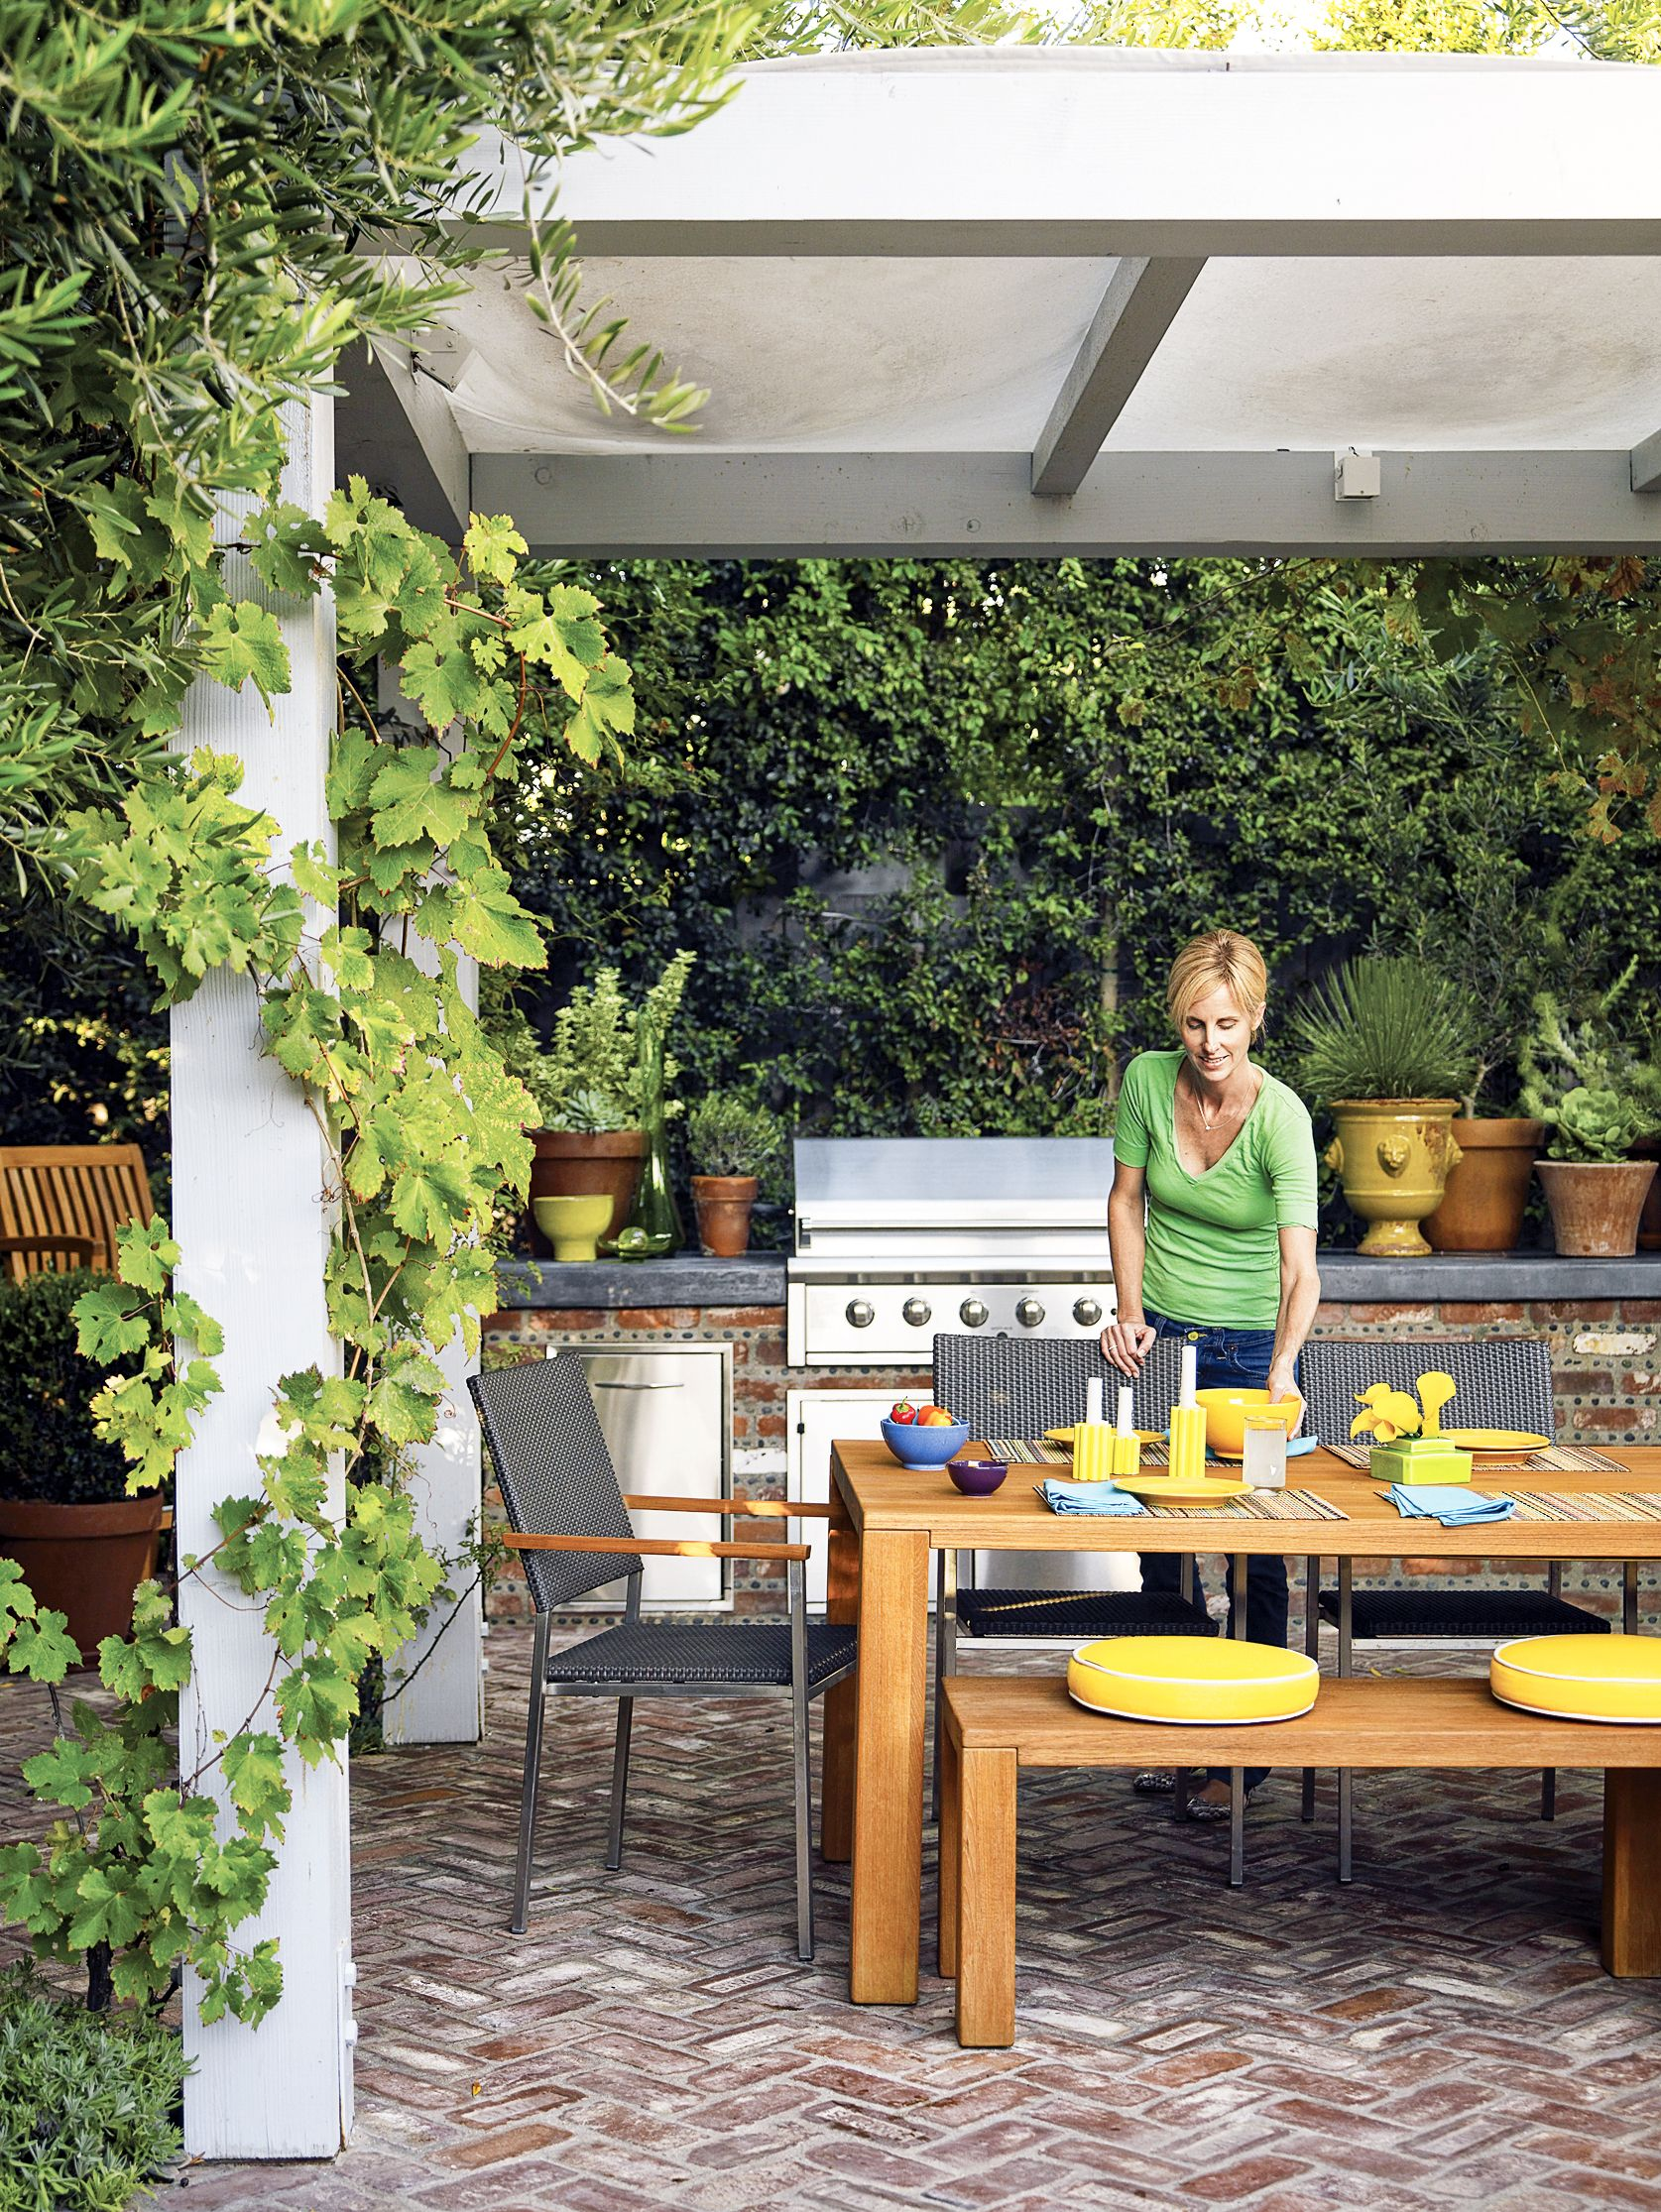 Read this before you put in an outdoor kitchen sly backyard